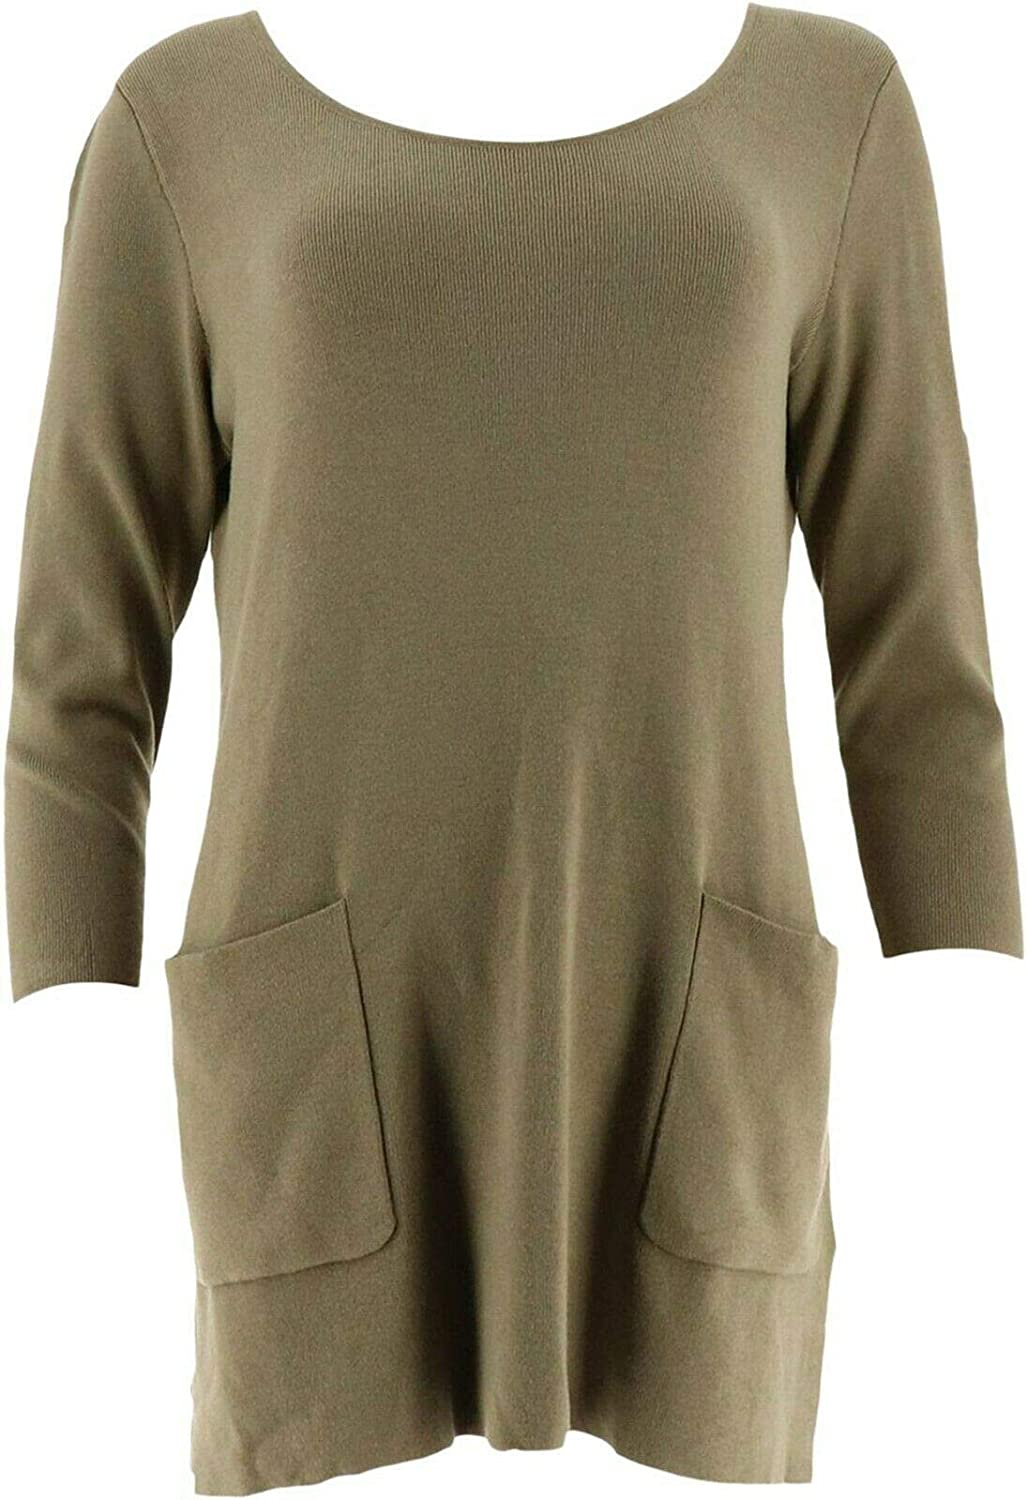 Linea Louis Dell'Olio Whisper Knit Sweater Pockets New A302563